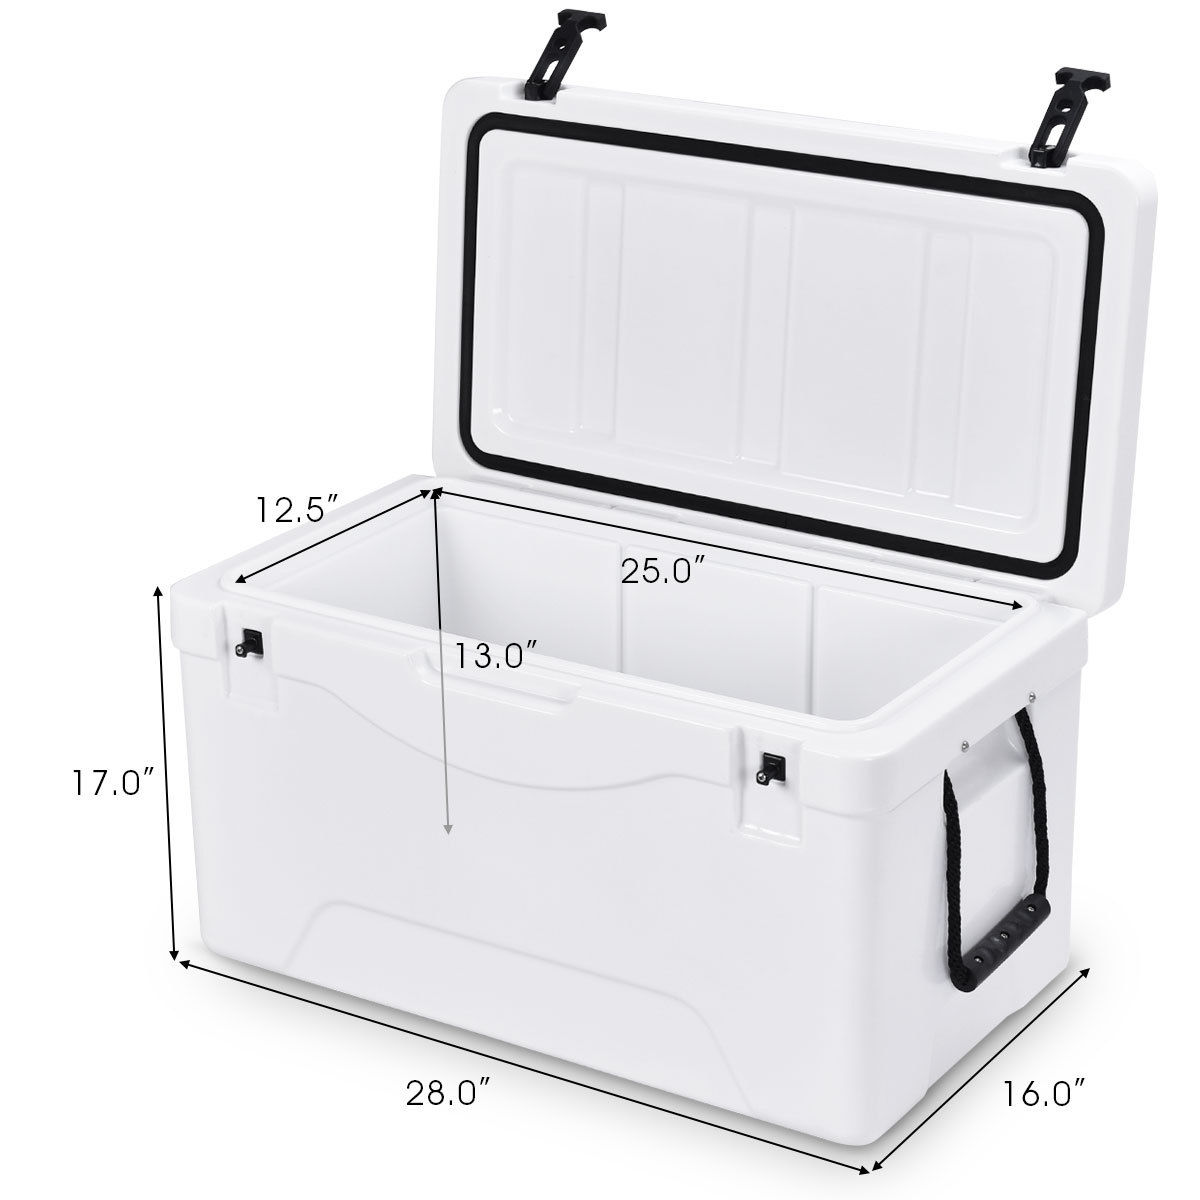 Heavy Duty Outdoor Insulated Fishing Hunting Cooler Ice Chest 64 Quart White - image 1 de 10